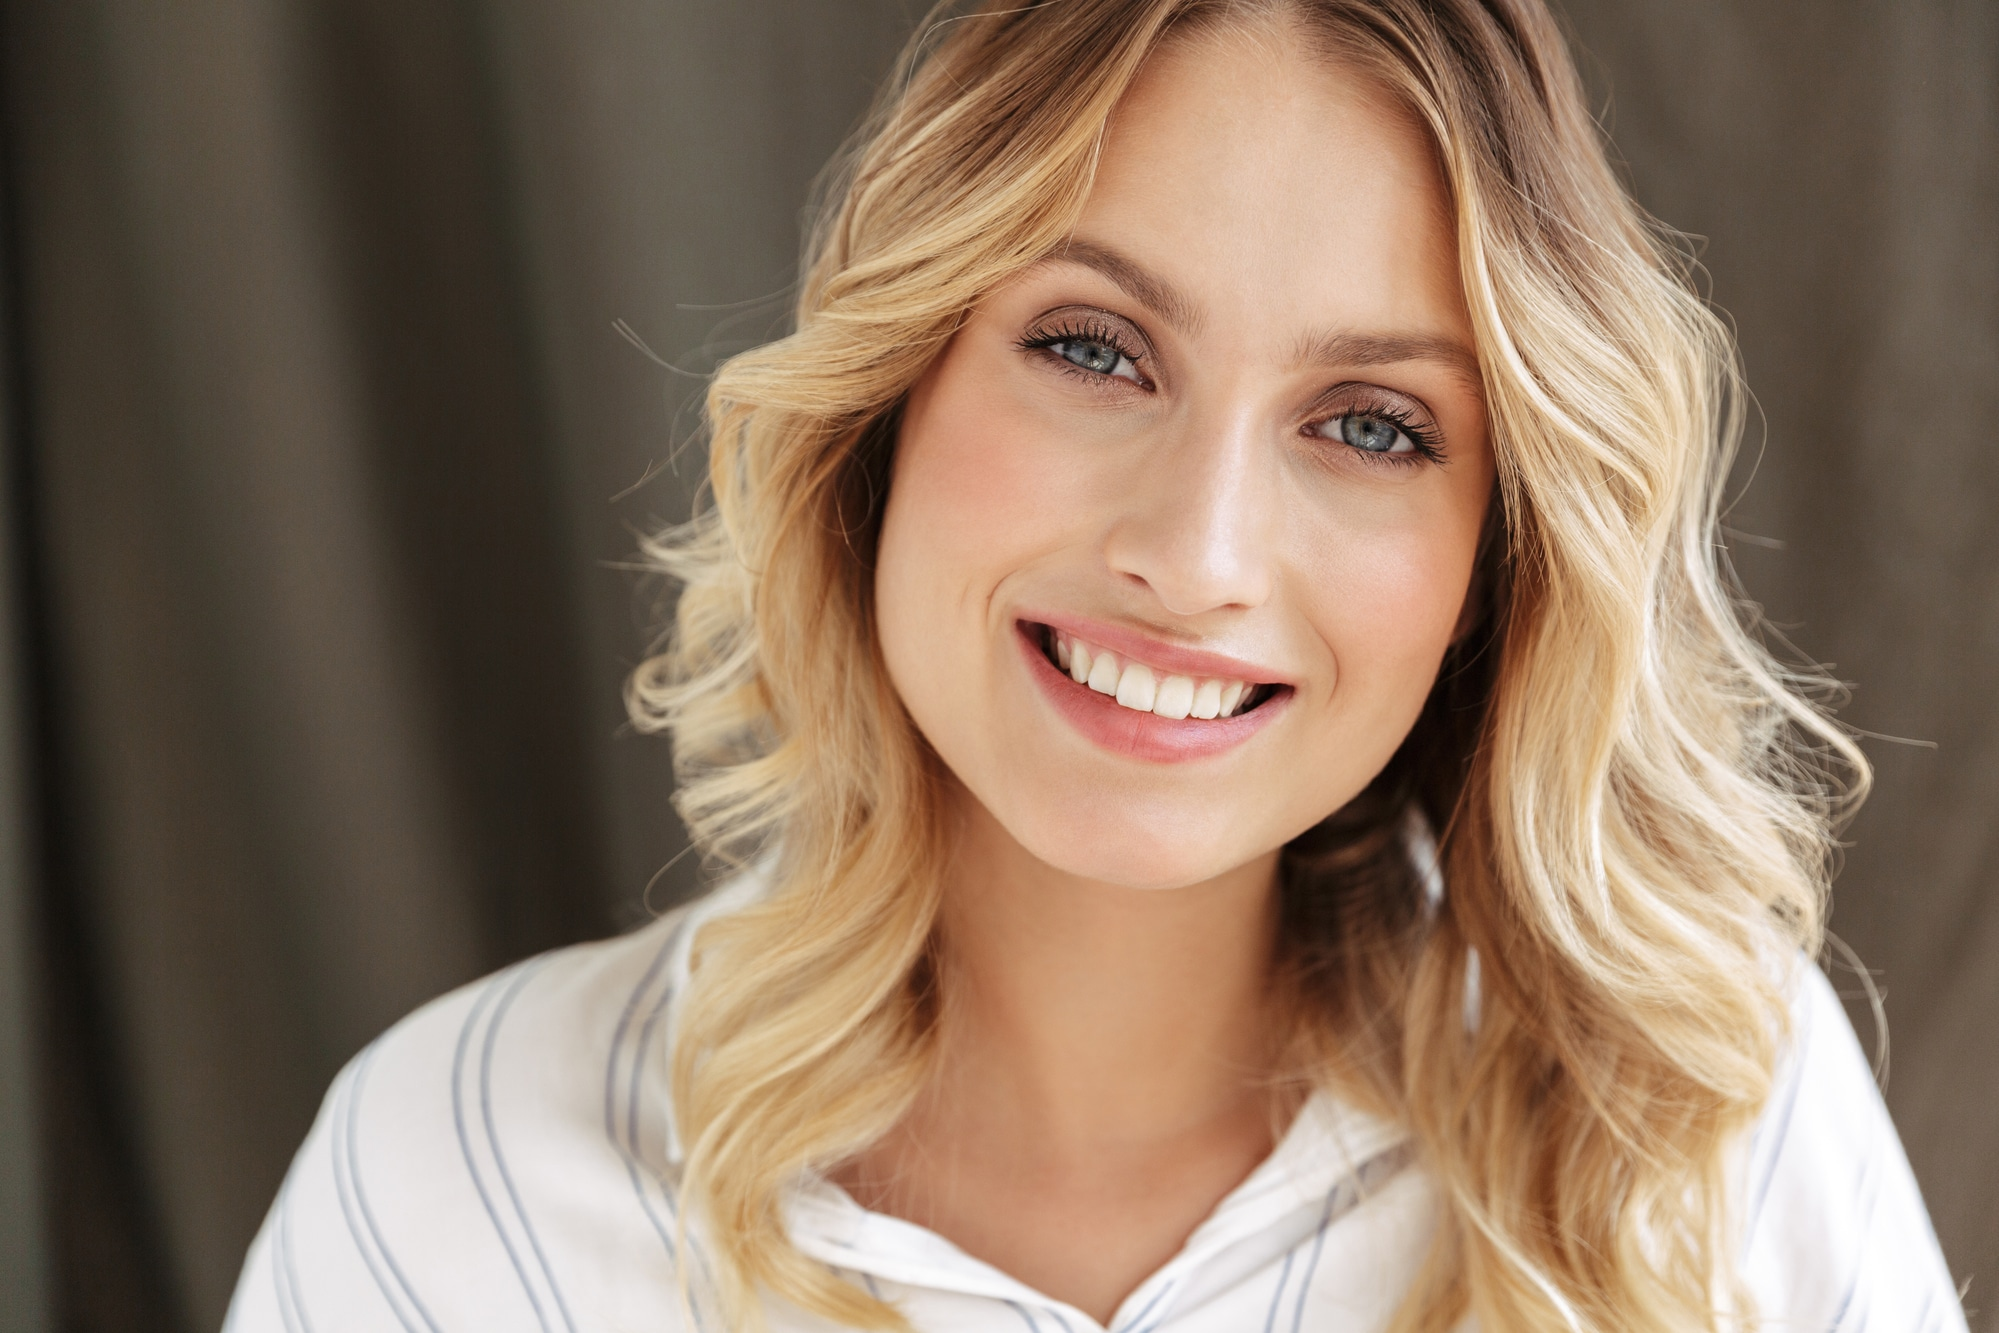 Close up of a beautiful smiling blonde woman wearing shirt looking at camera over gray wall